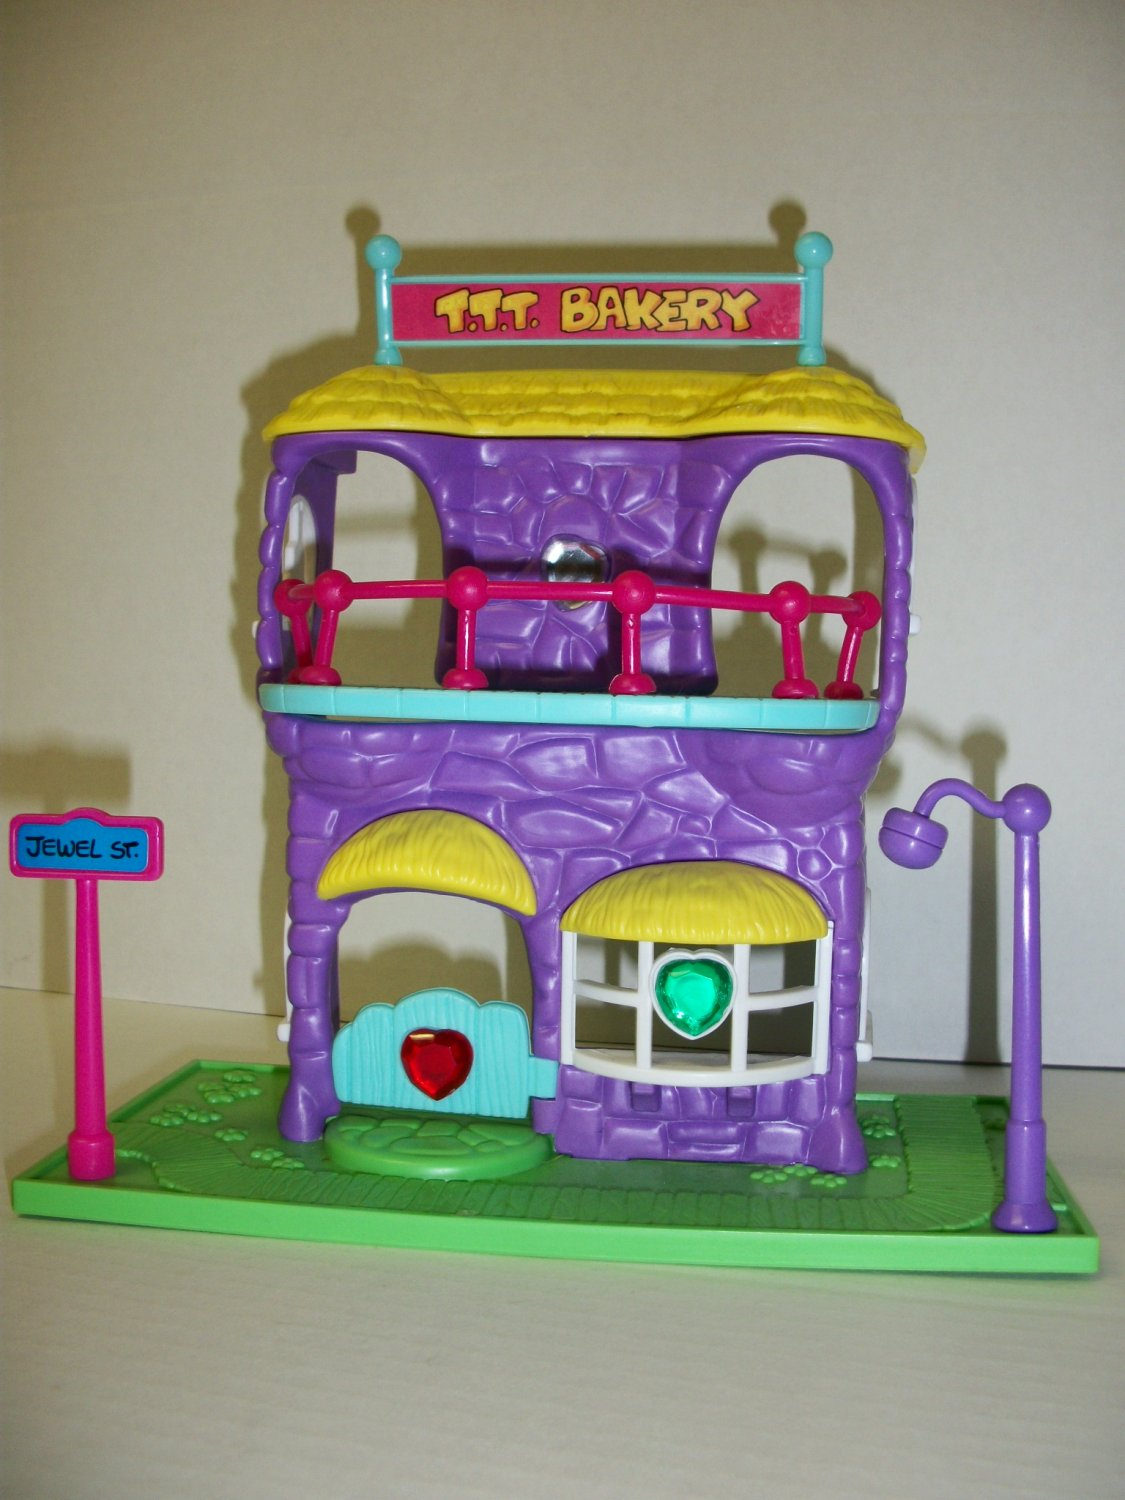 TREASURE TROLL TEENIES BAKERY Playset